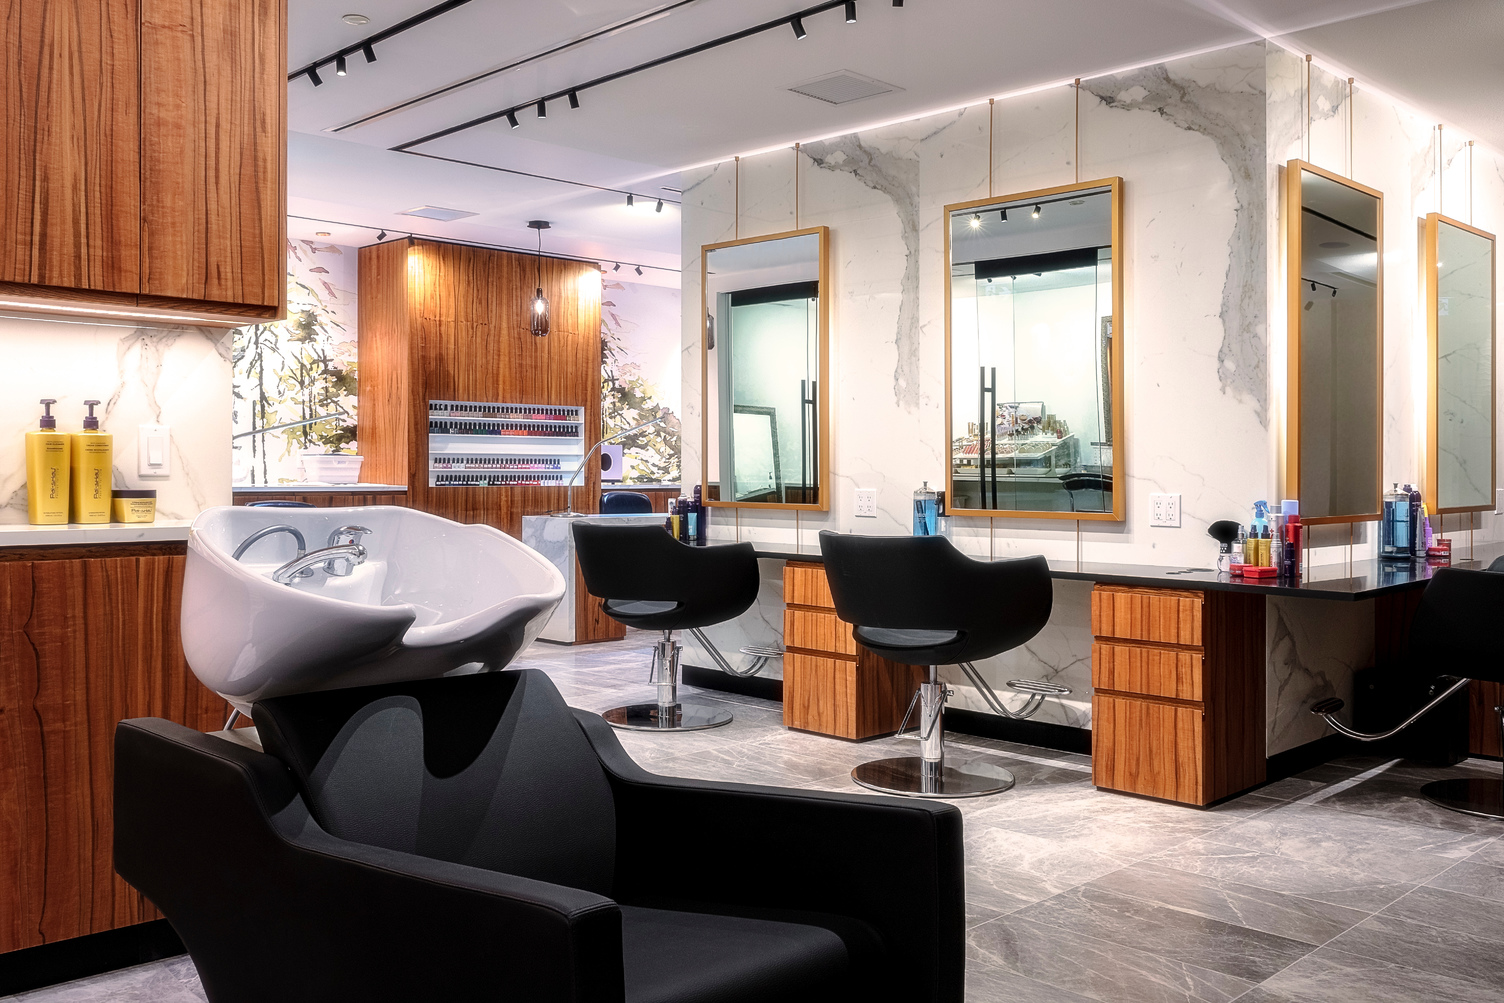 The Willow Stream Spa Salon Expansion